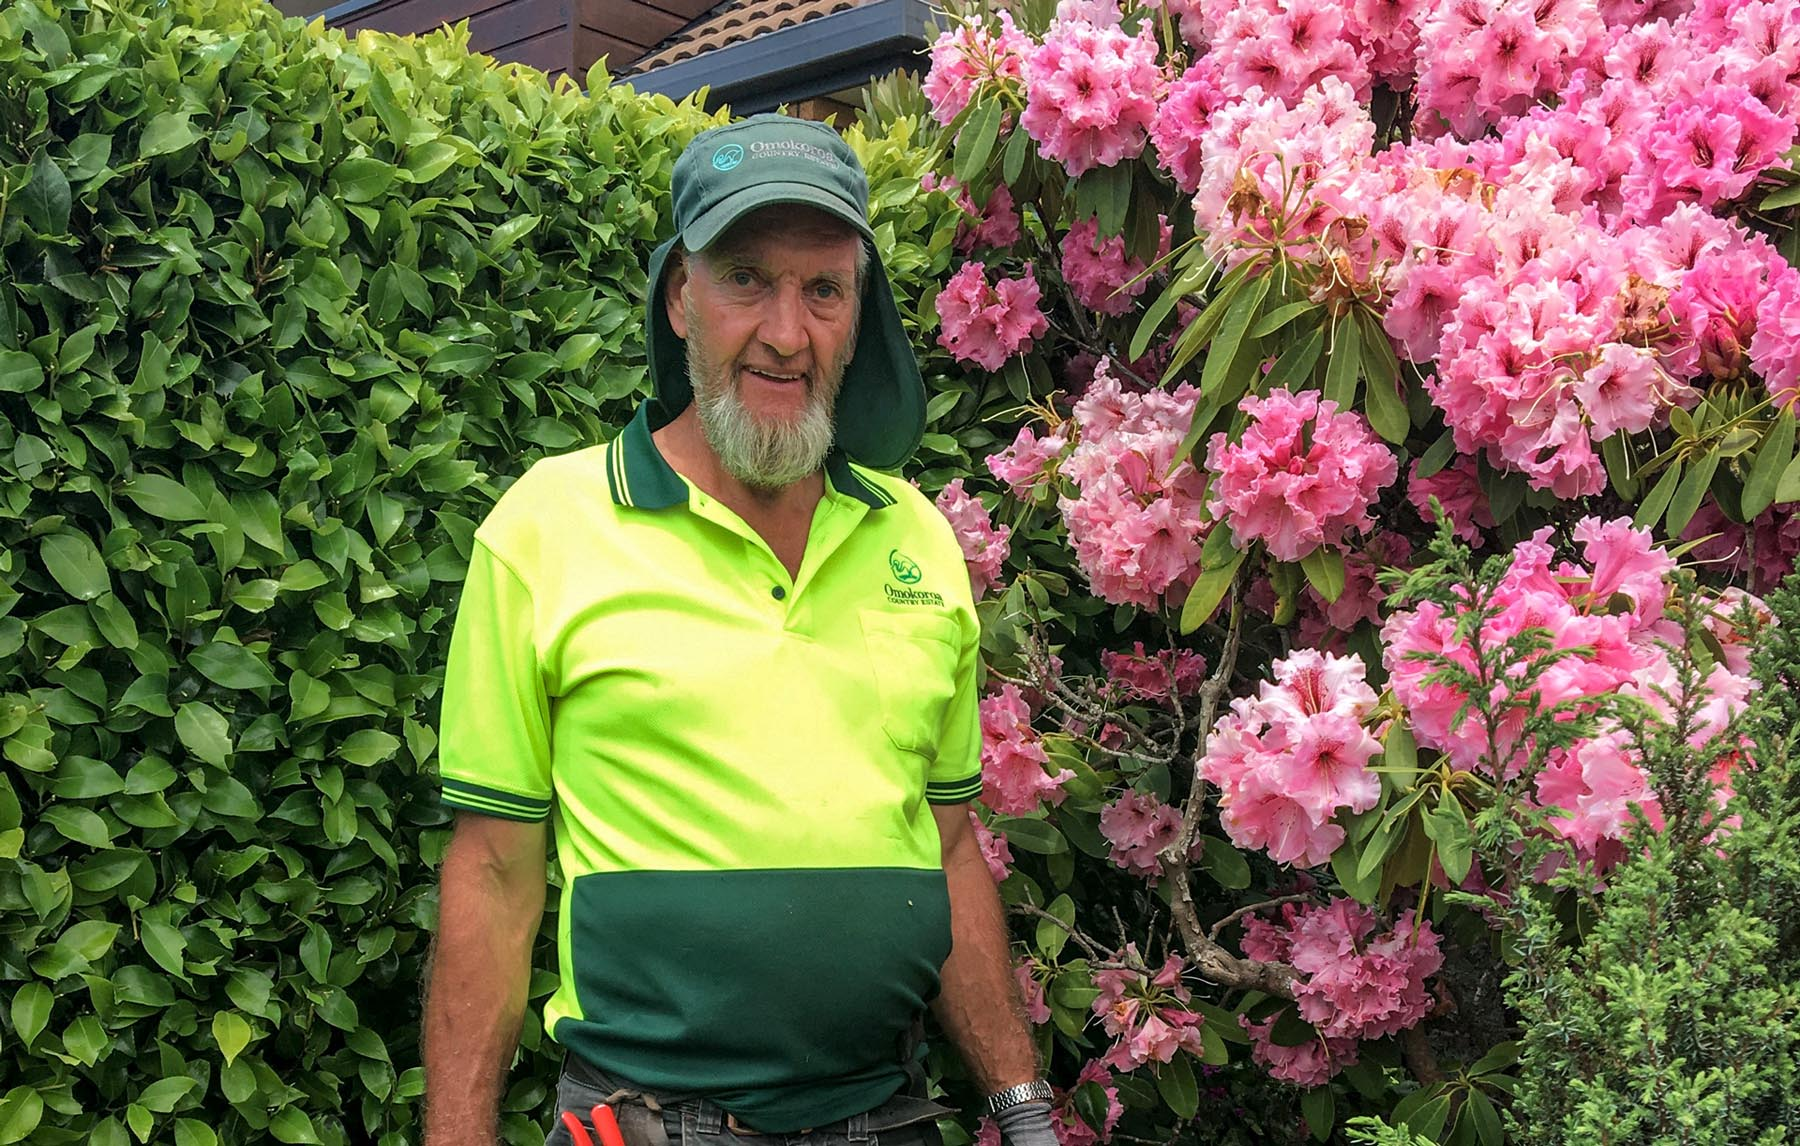 Introducing Our Senior Gardener